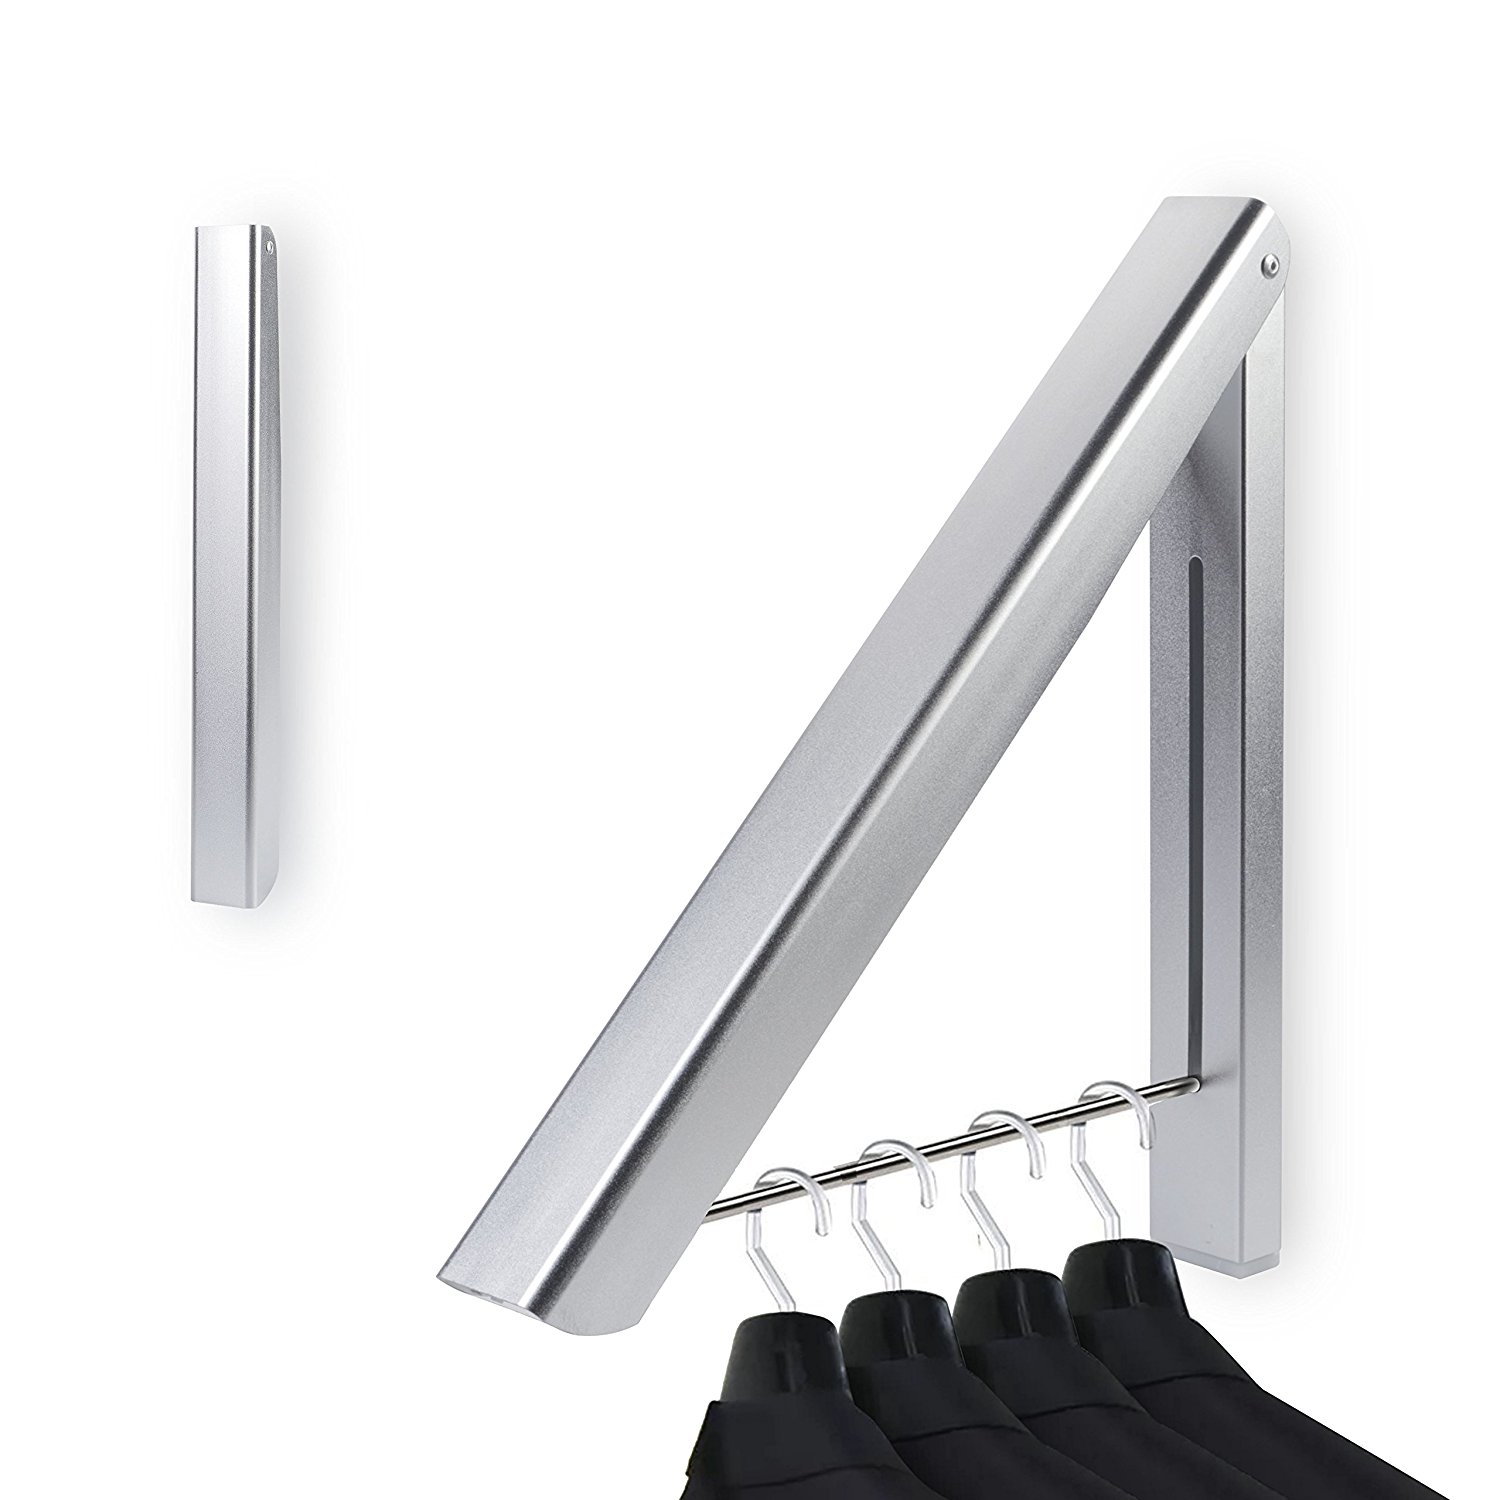 Dryer Shirt Coat Cupboard-Storage Wall-Hanger Space-Saving Folding/pull-Out Airer 27kg